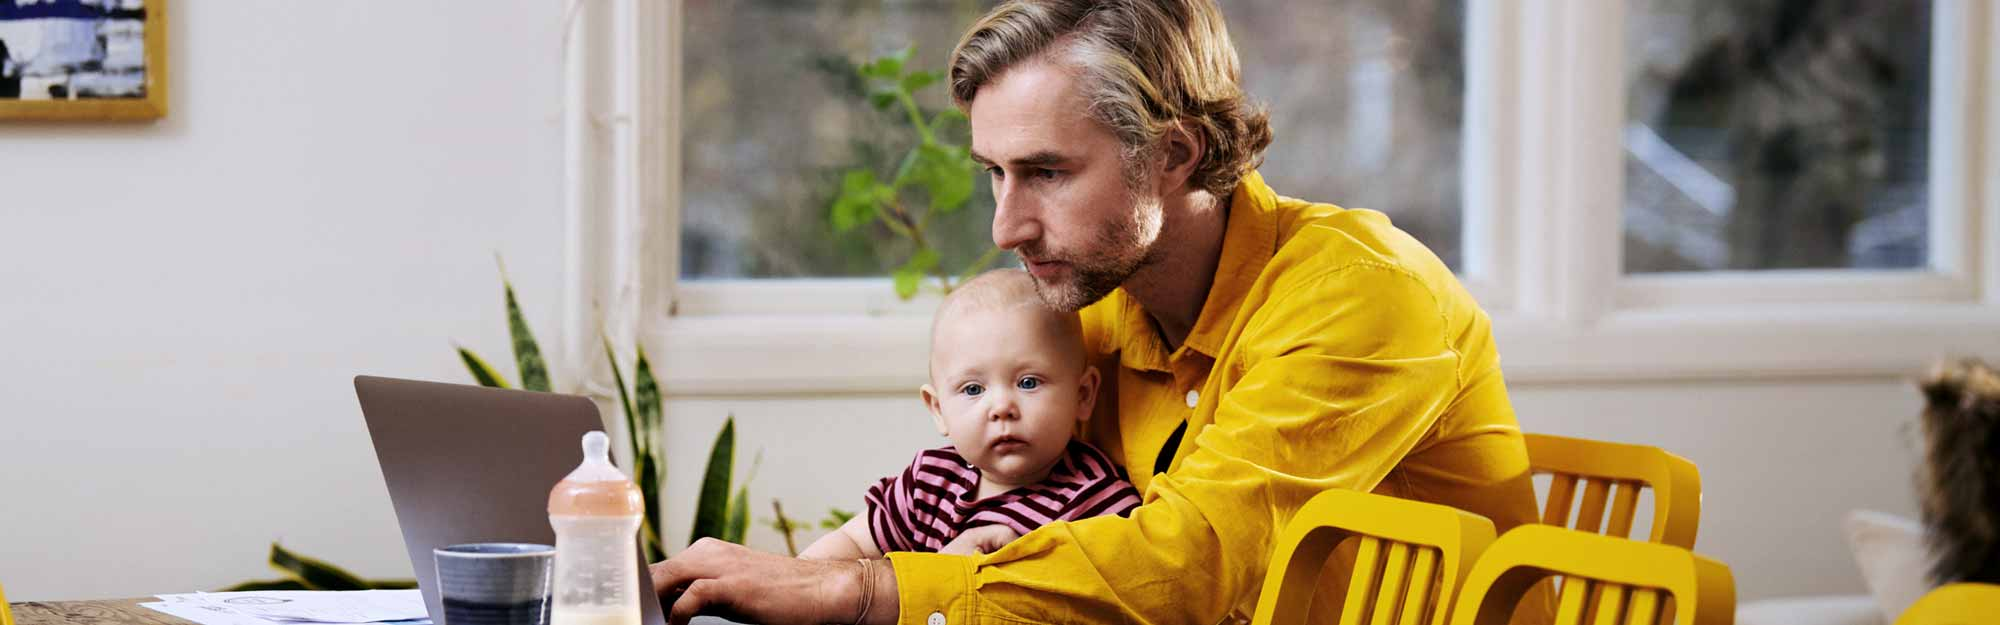 Father and baby with a laptop